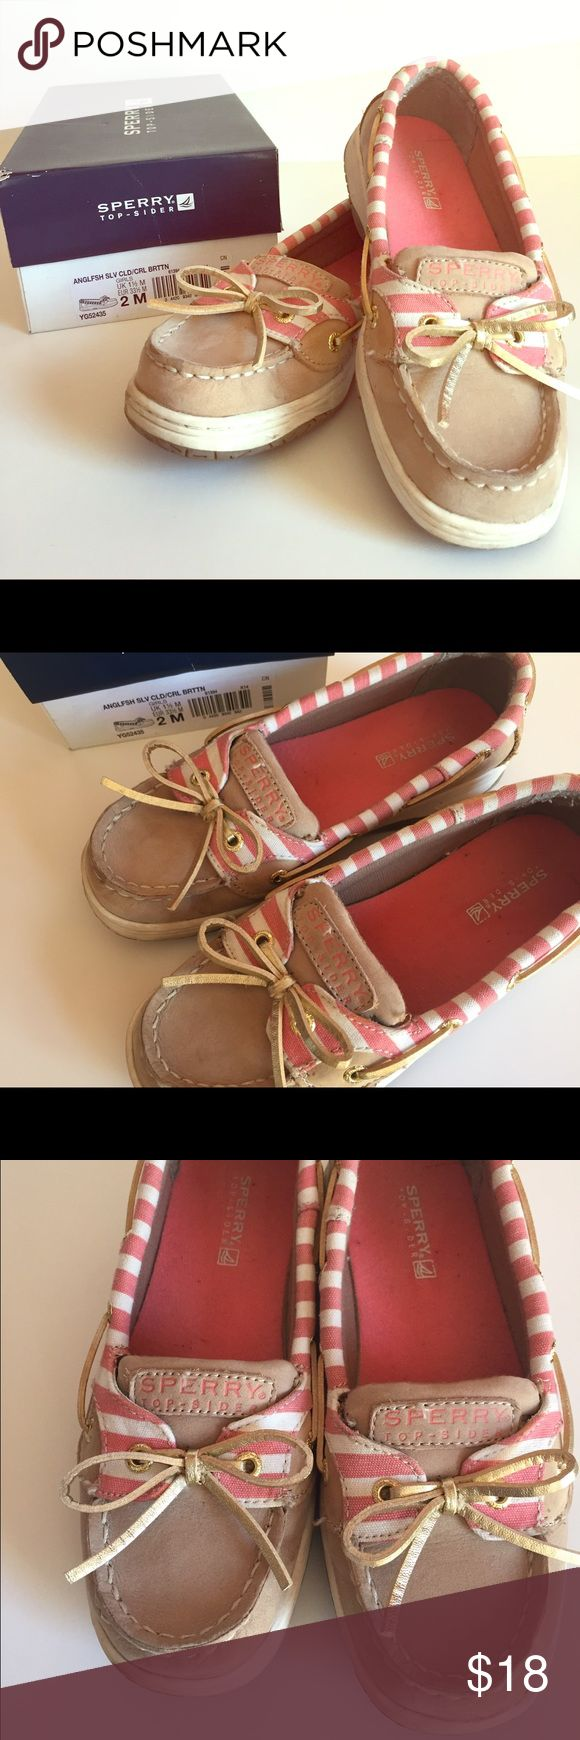 Girls' Sperry Angelfish Boat Shoe Size 2 Great condition pre-owned Girls Sperry Boat Shoe. Color: Oat & Pink. Size 2 Sperry Top-Sider Shoes Flats & Loafers